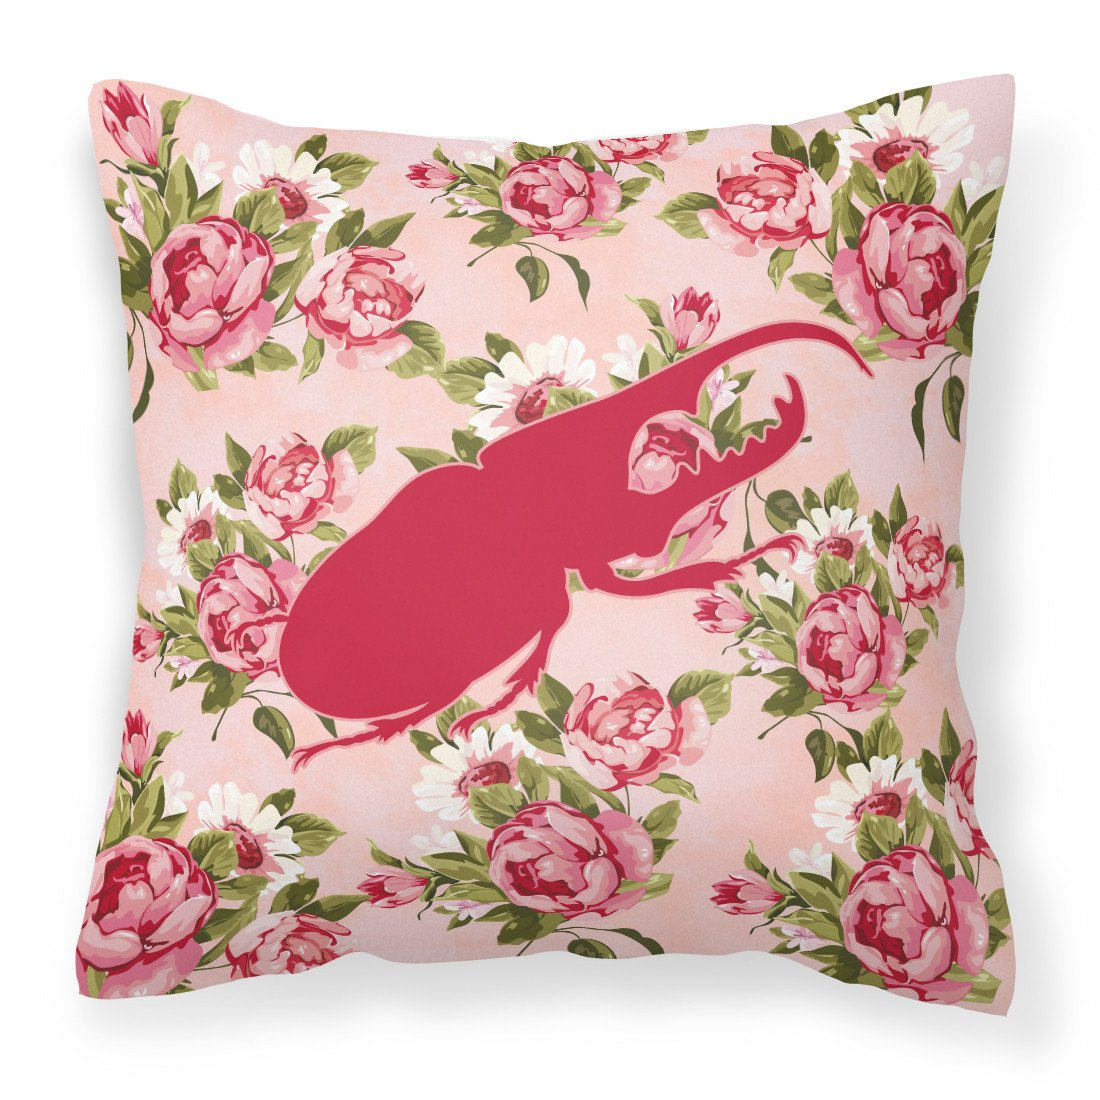 Beetle Shabby Chic Pink Roses  Fabric Decorative Pillow BB1056-RS-PK-PW1414 - the-store.com